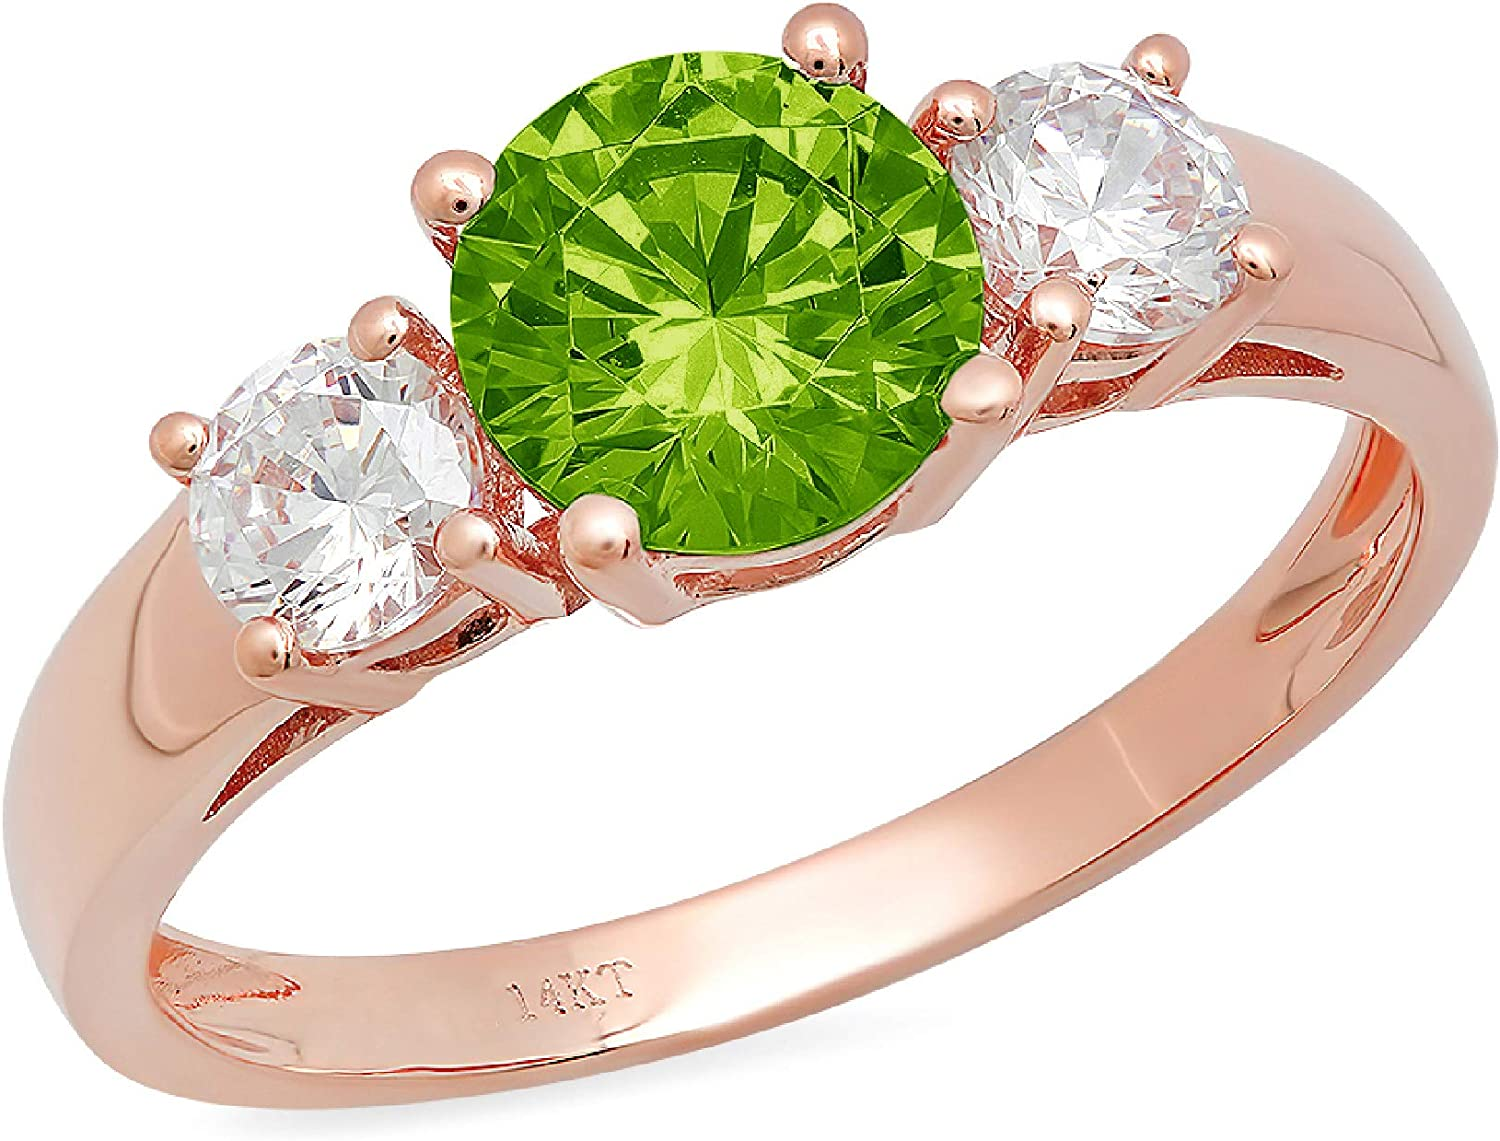 1.47ct Brilliant Round Cut Solitaire three stone Flawless Genuine Natural Pure Green Peridot Gemstone VVS1 Designer Modern Statement Ring Solid 14k Rose Pink Gold